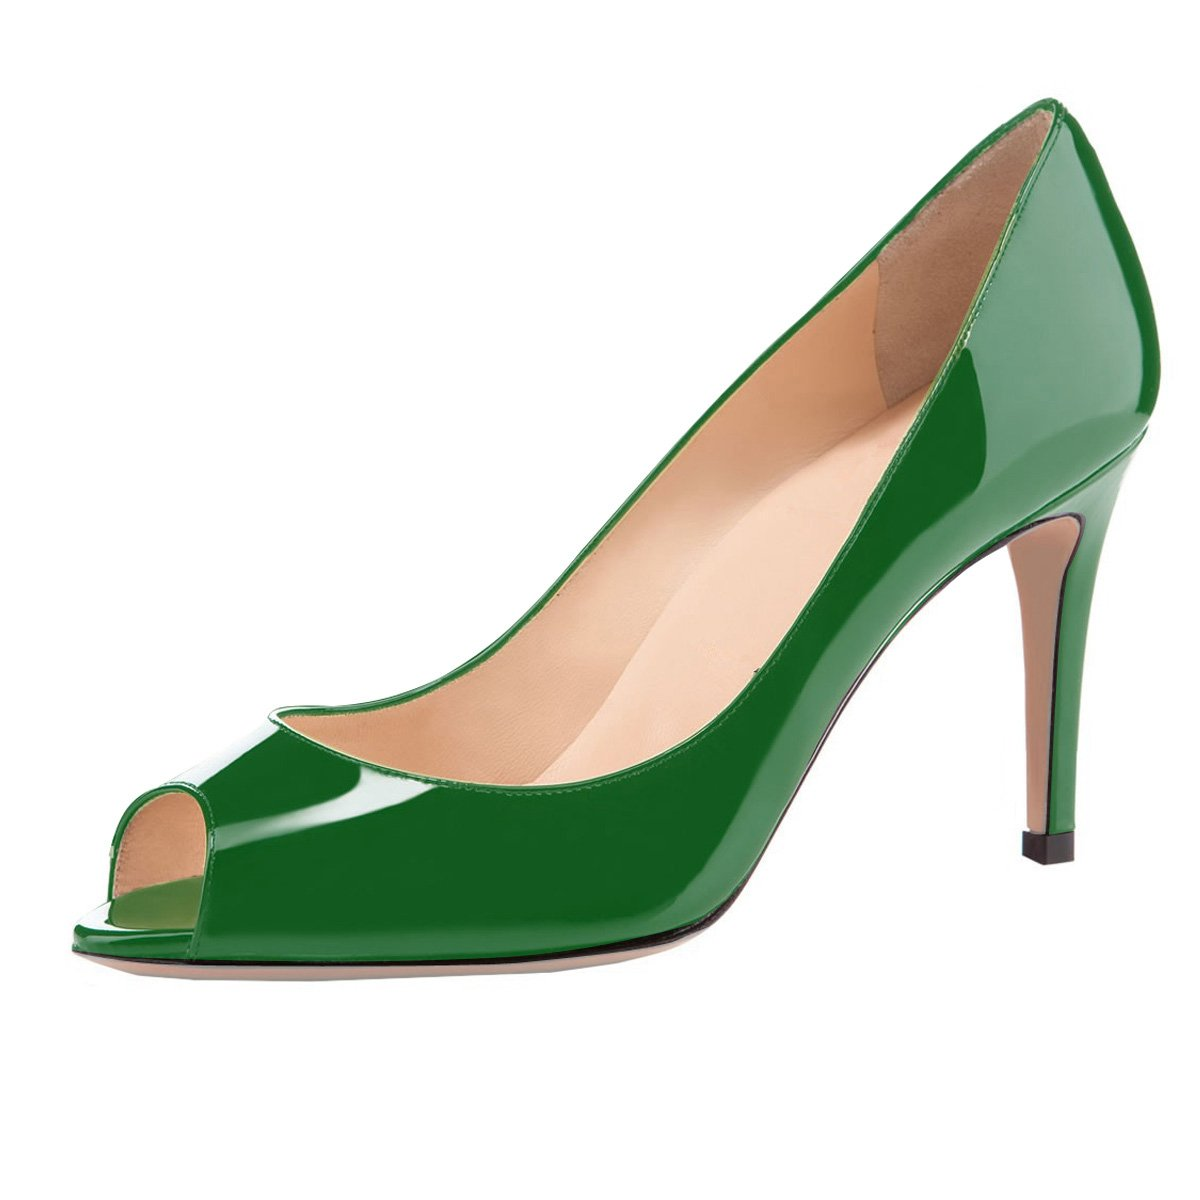 Eldof Women Peep Toe Pumps Mid-Heel Pumps Formal Wedding Bridal Classic Heel Open Toe Stiletto B07F1JRN24 9 B(M) US|Green